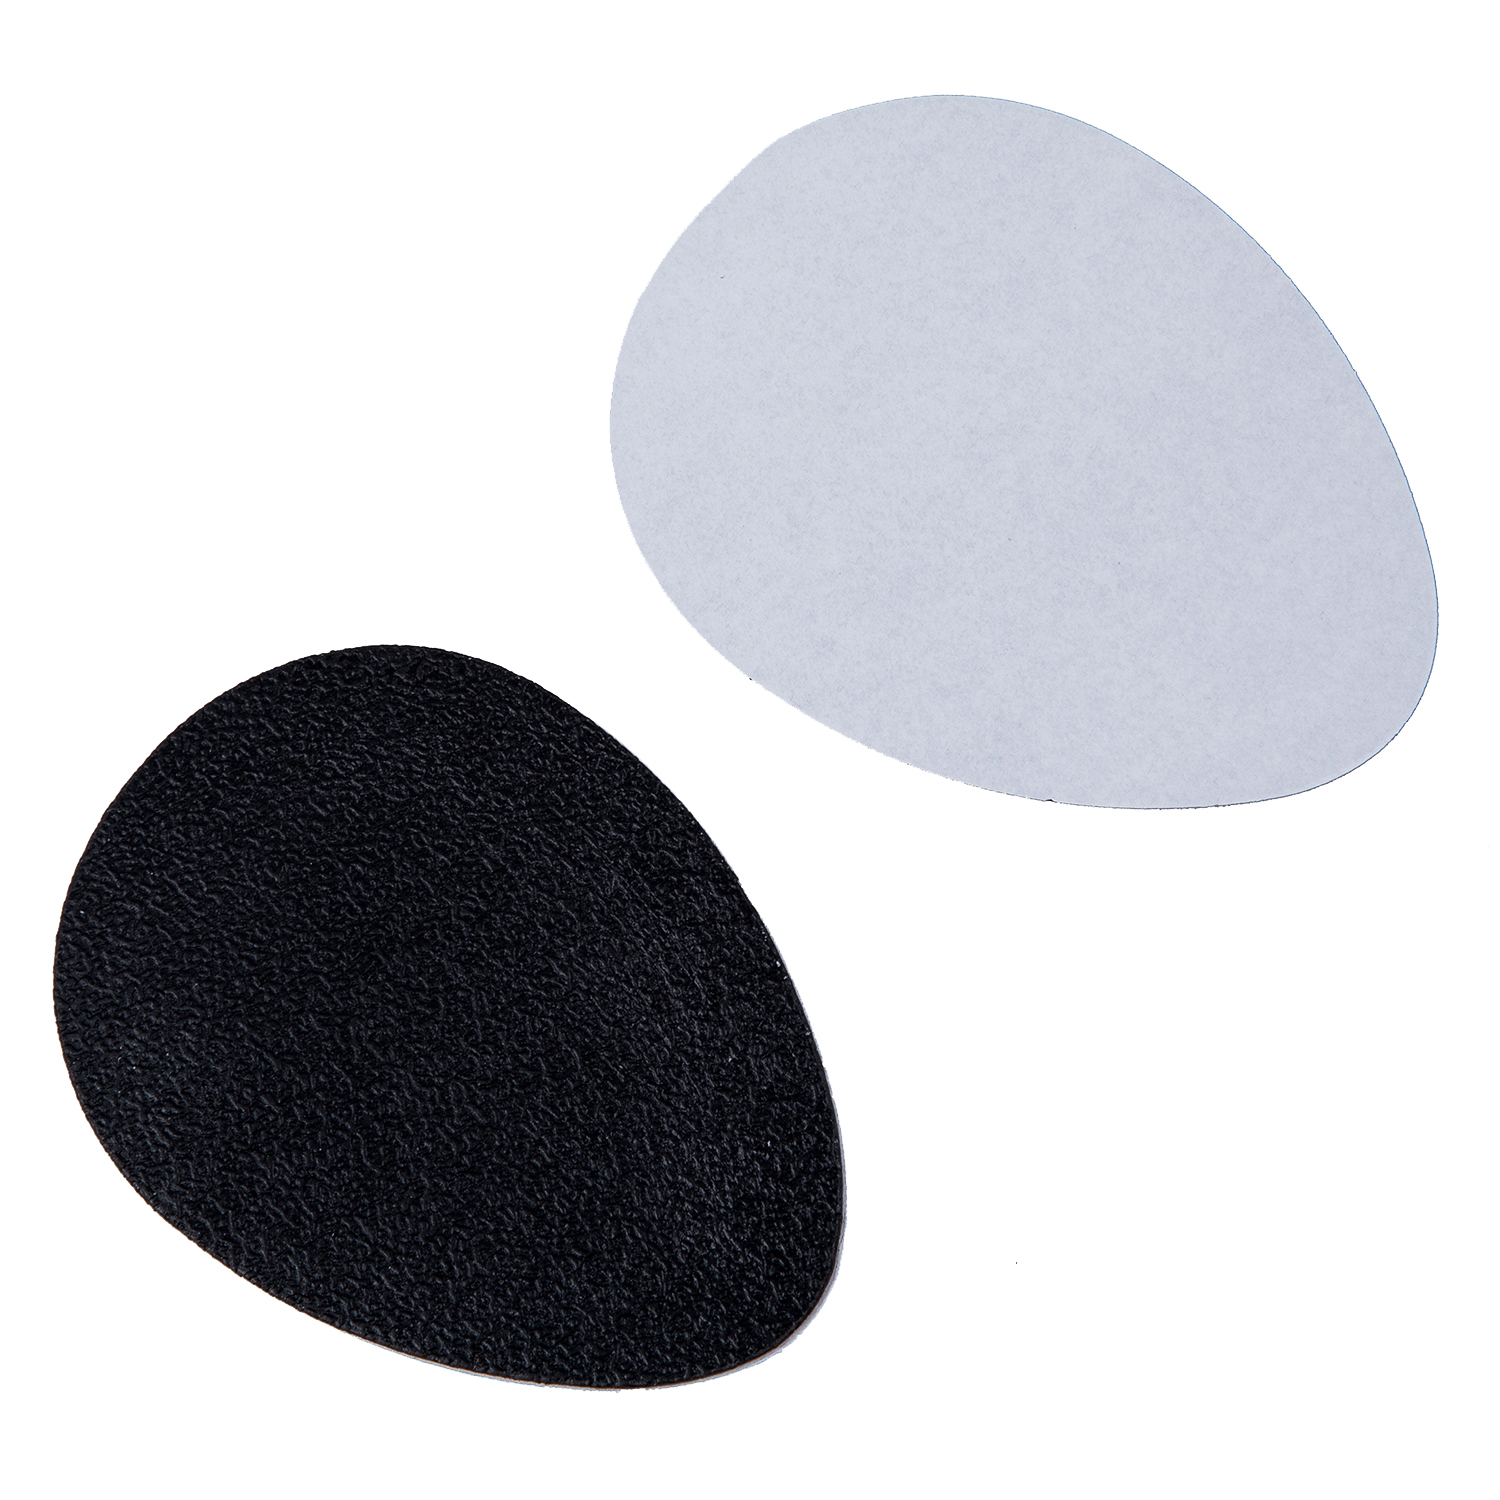 ASDS Anti-slip Self-adhesive pad for Sole